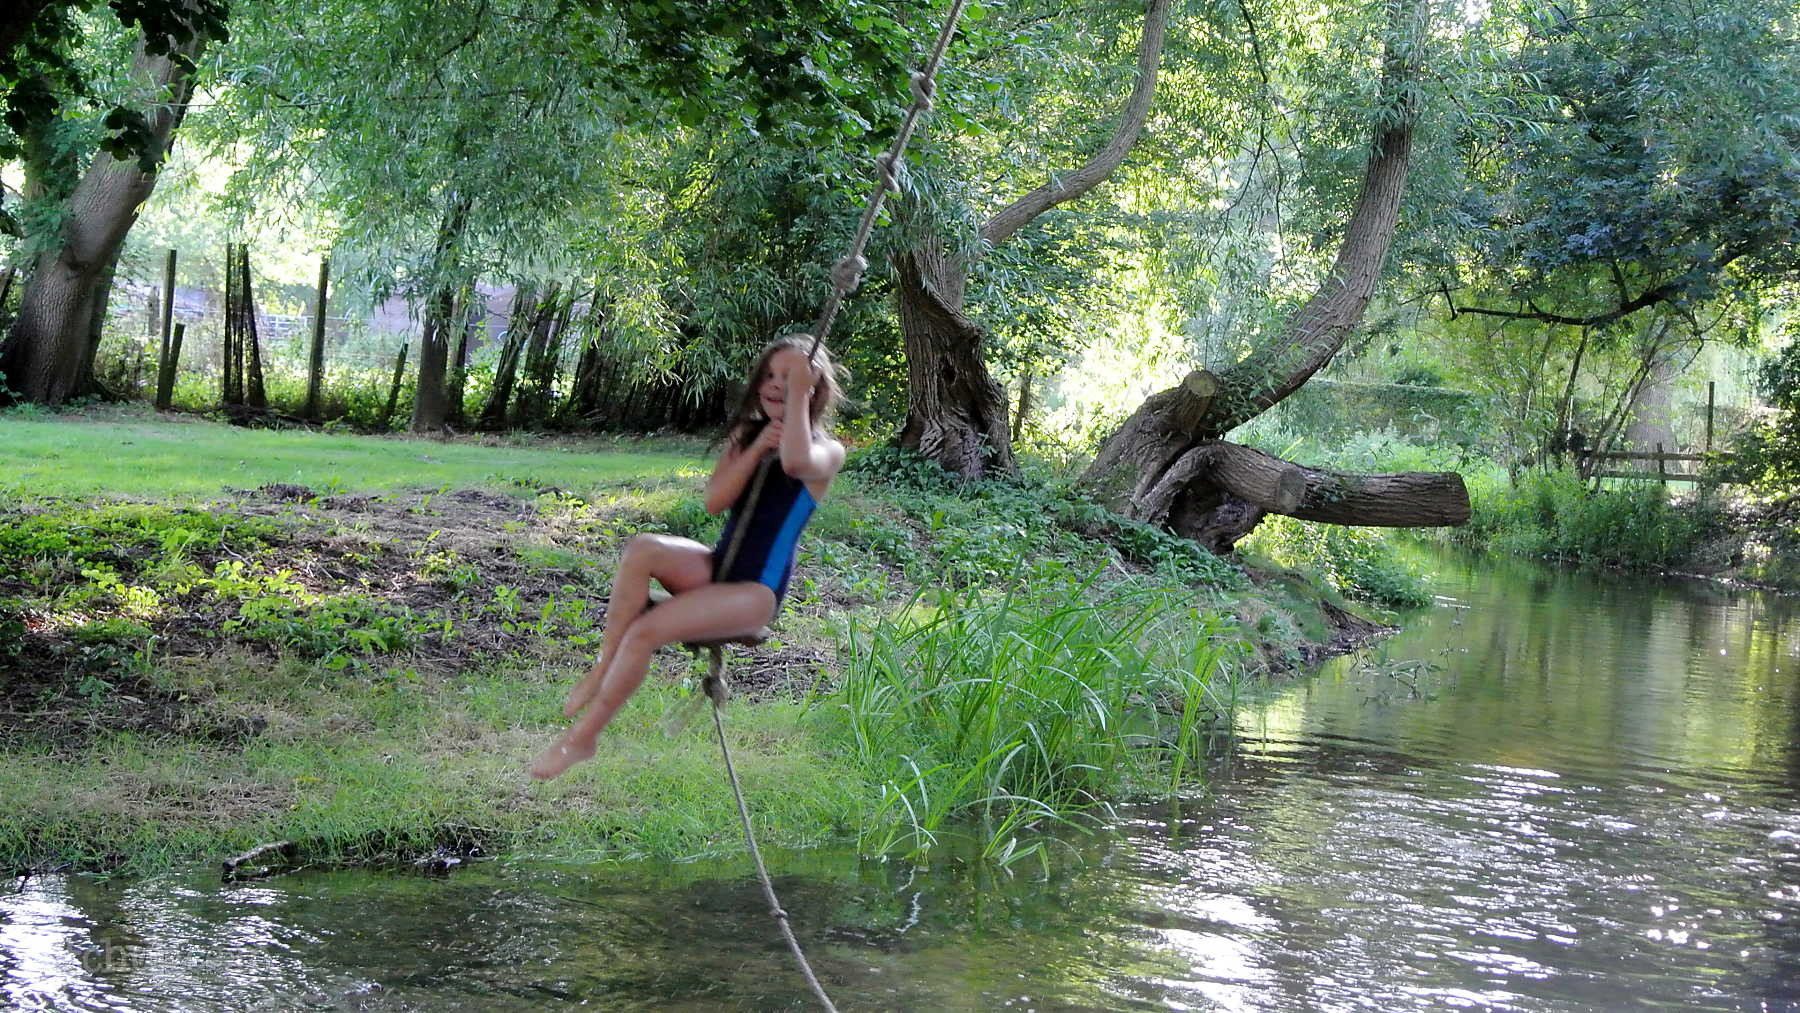 Rope Swing Picture Weddings and Camping.